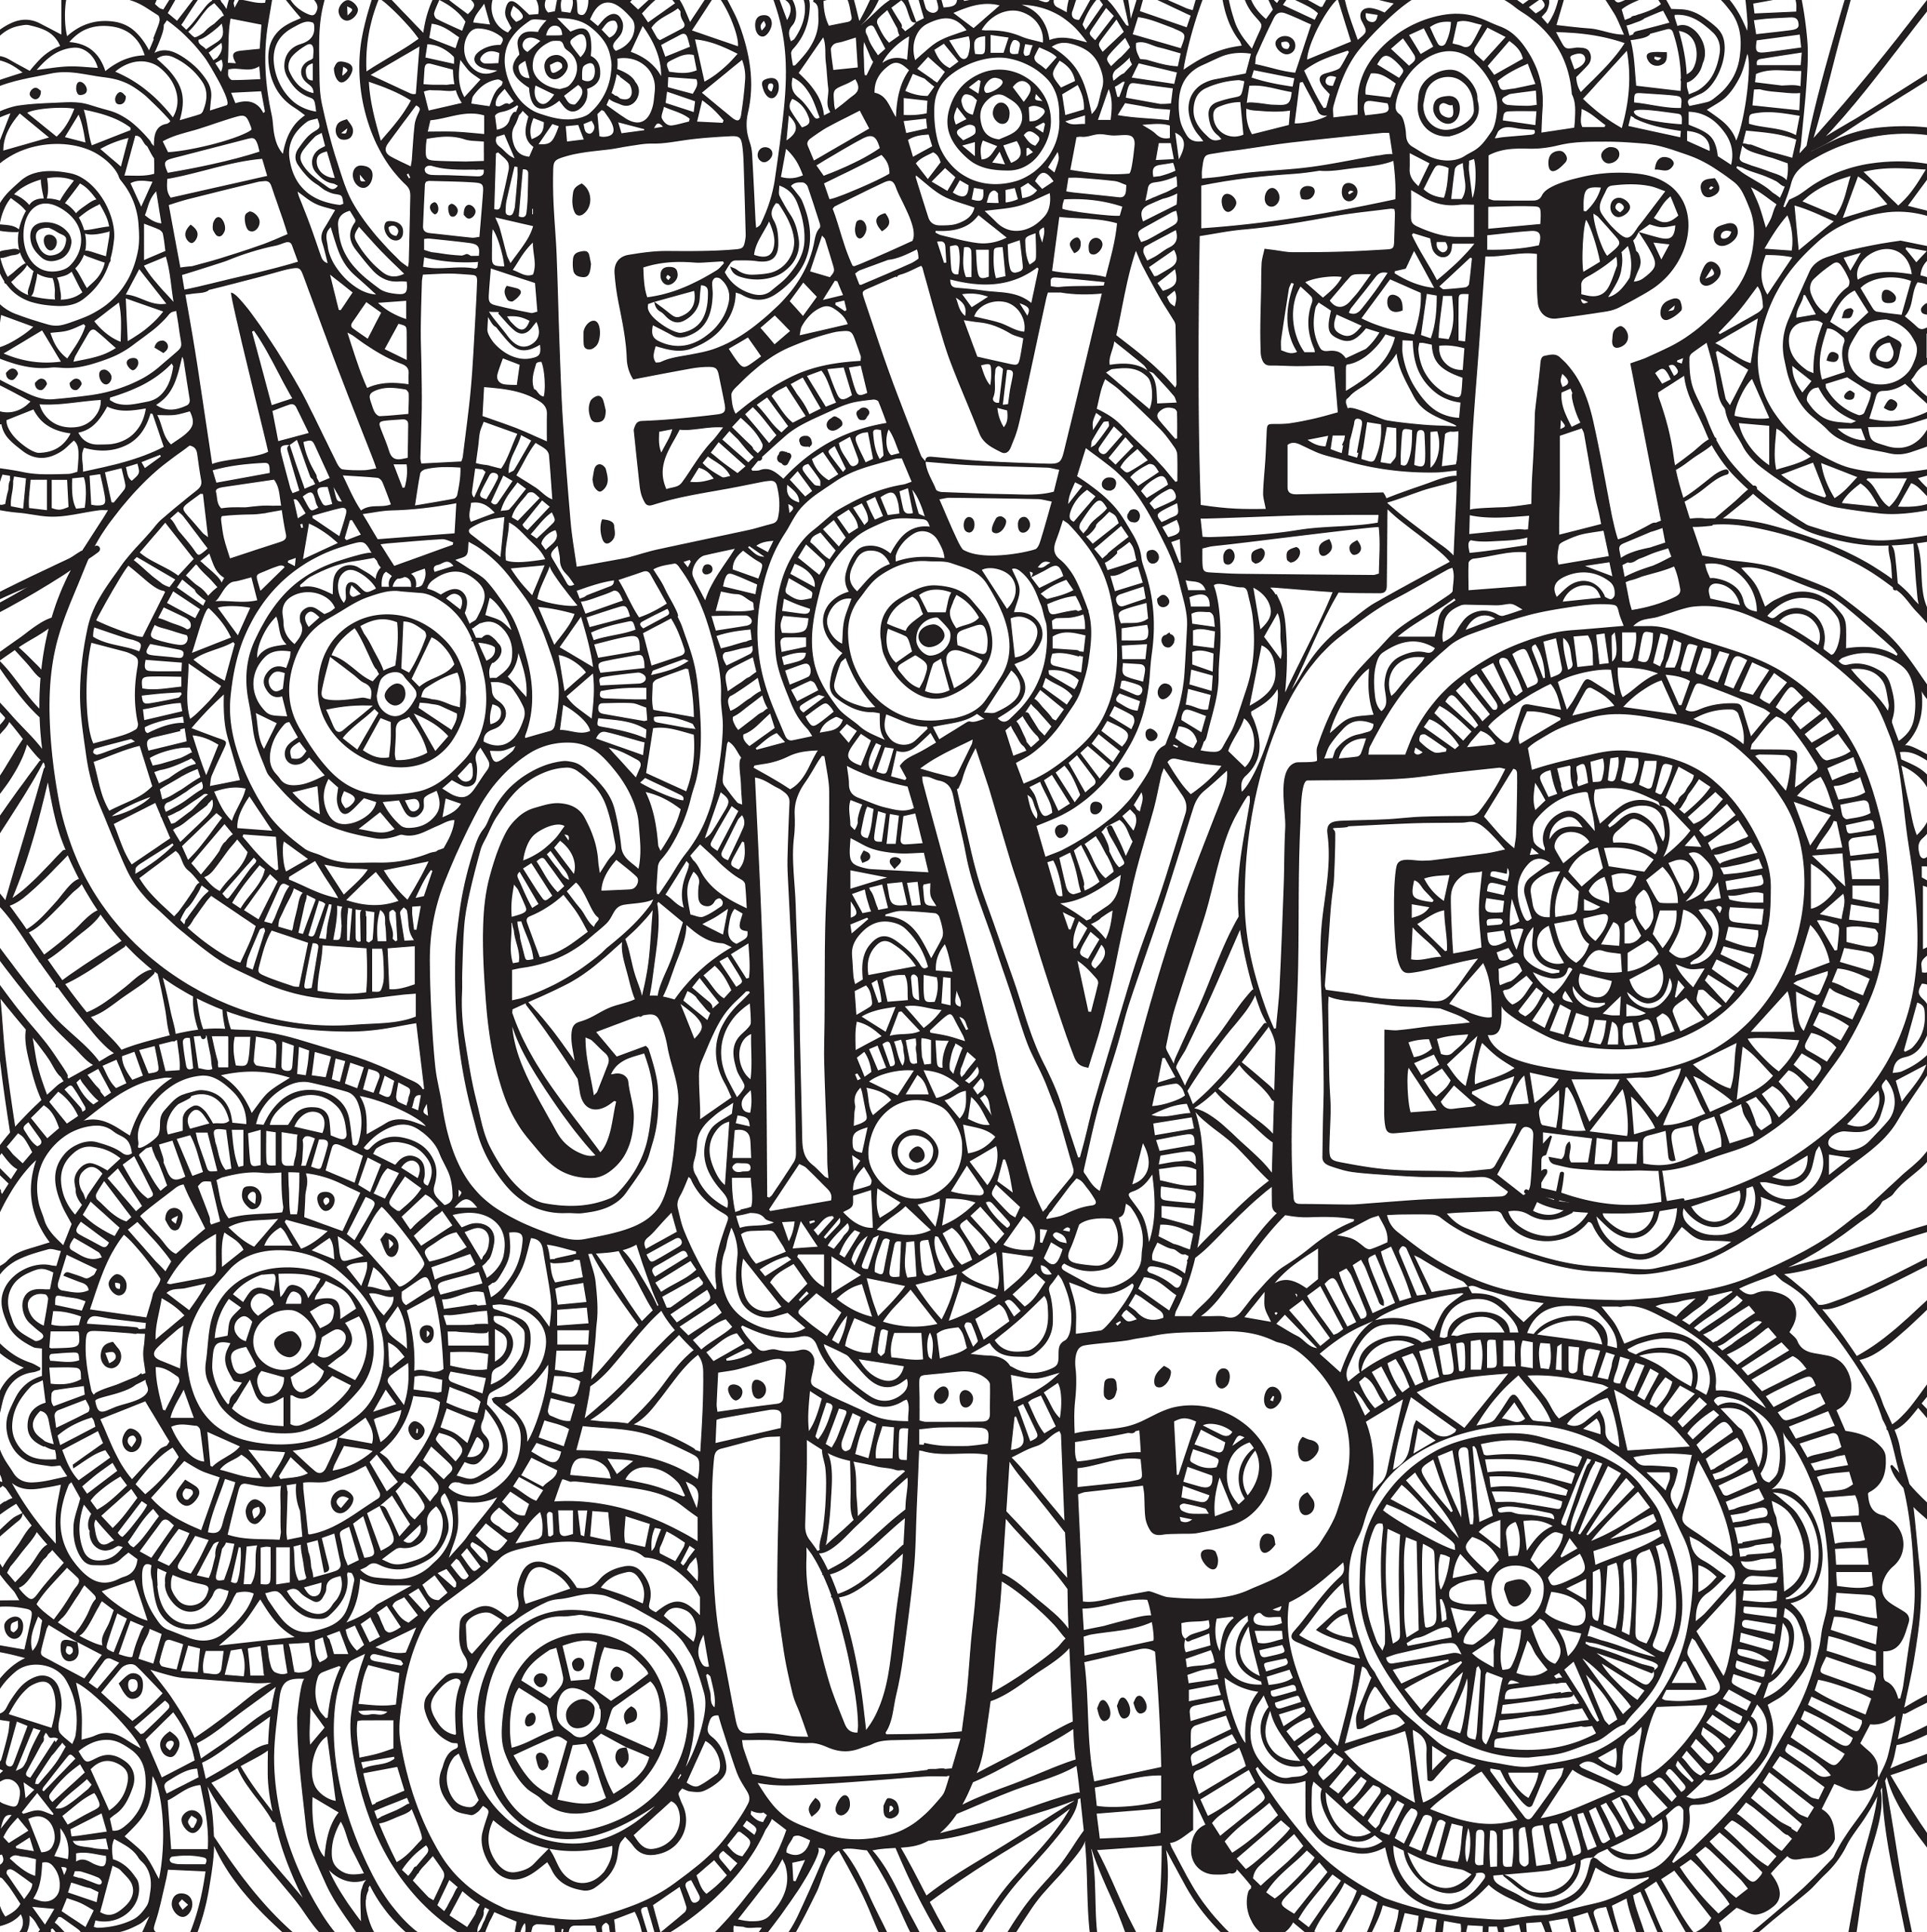 New Page Quote Coloring Sheets Free Colouring Pages Gallery Of Fresh Inspirational Coloring Pages for Adults Line and Studynow to Print